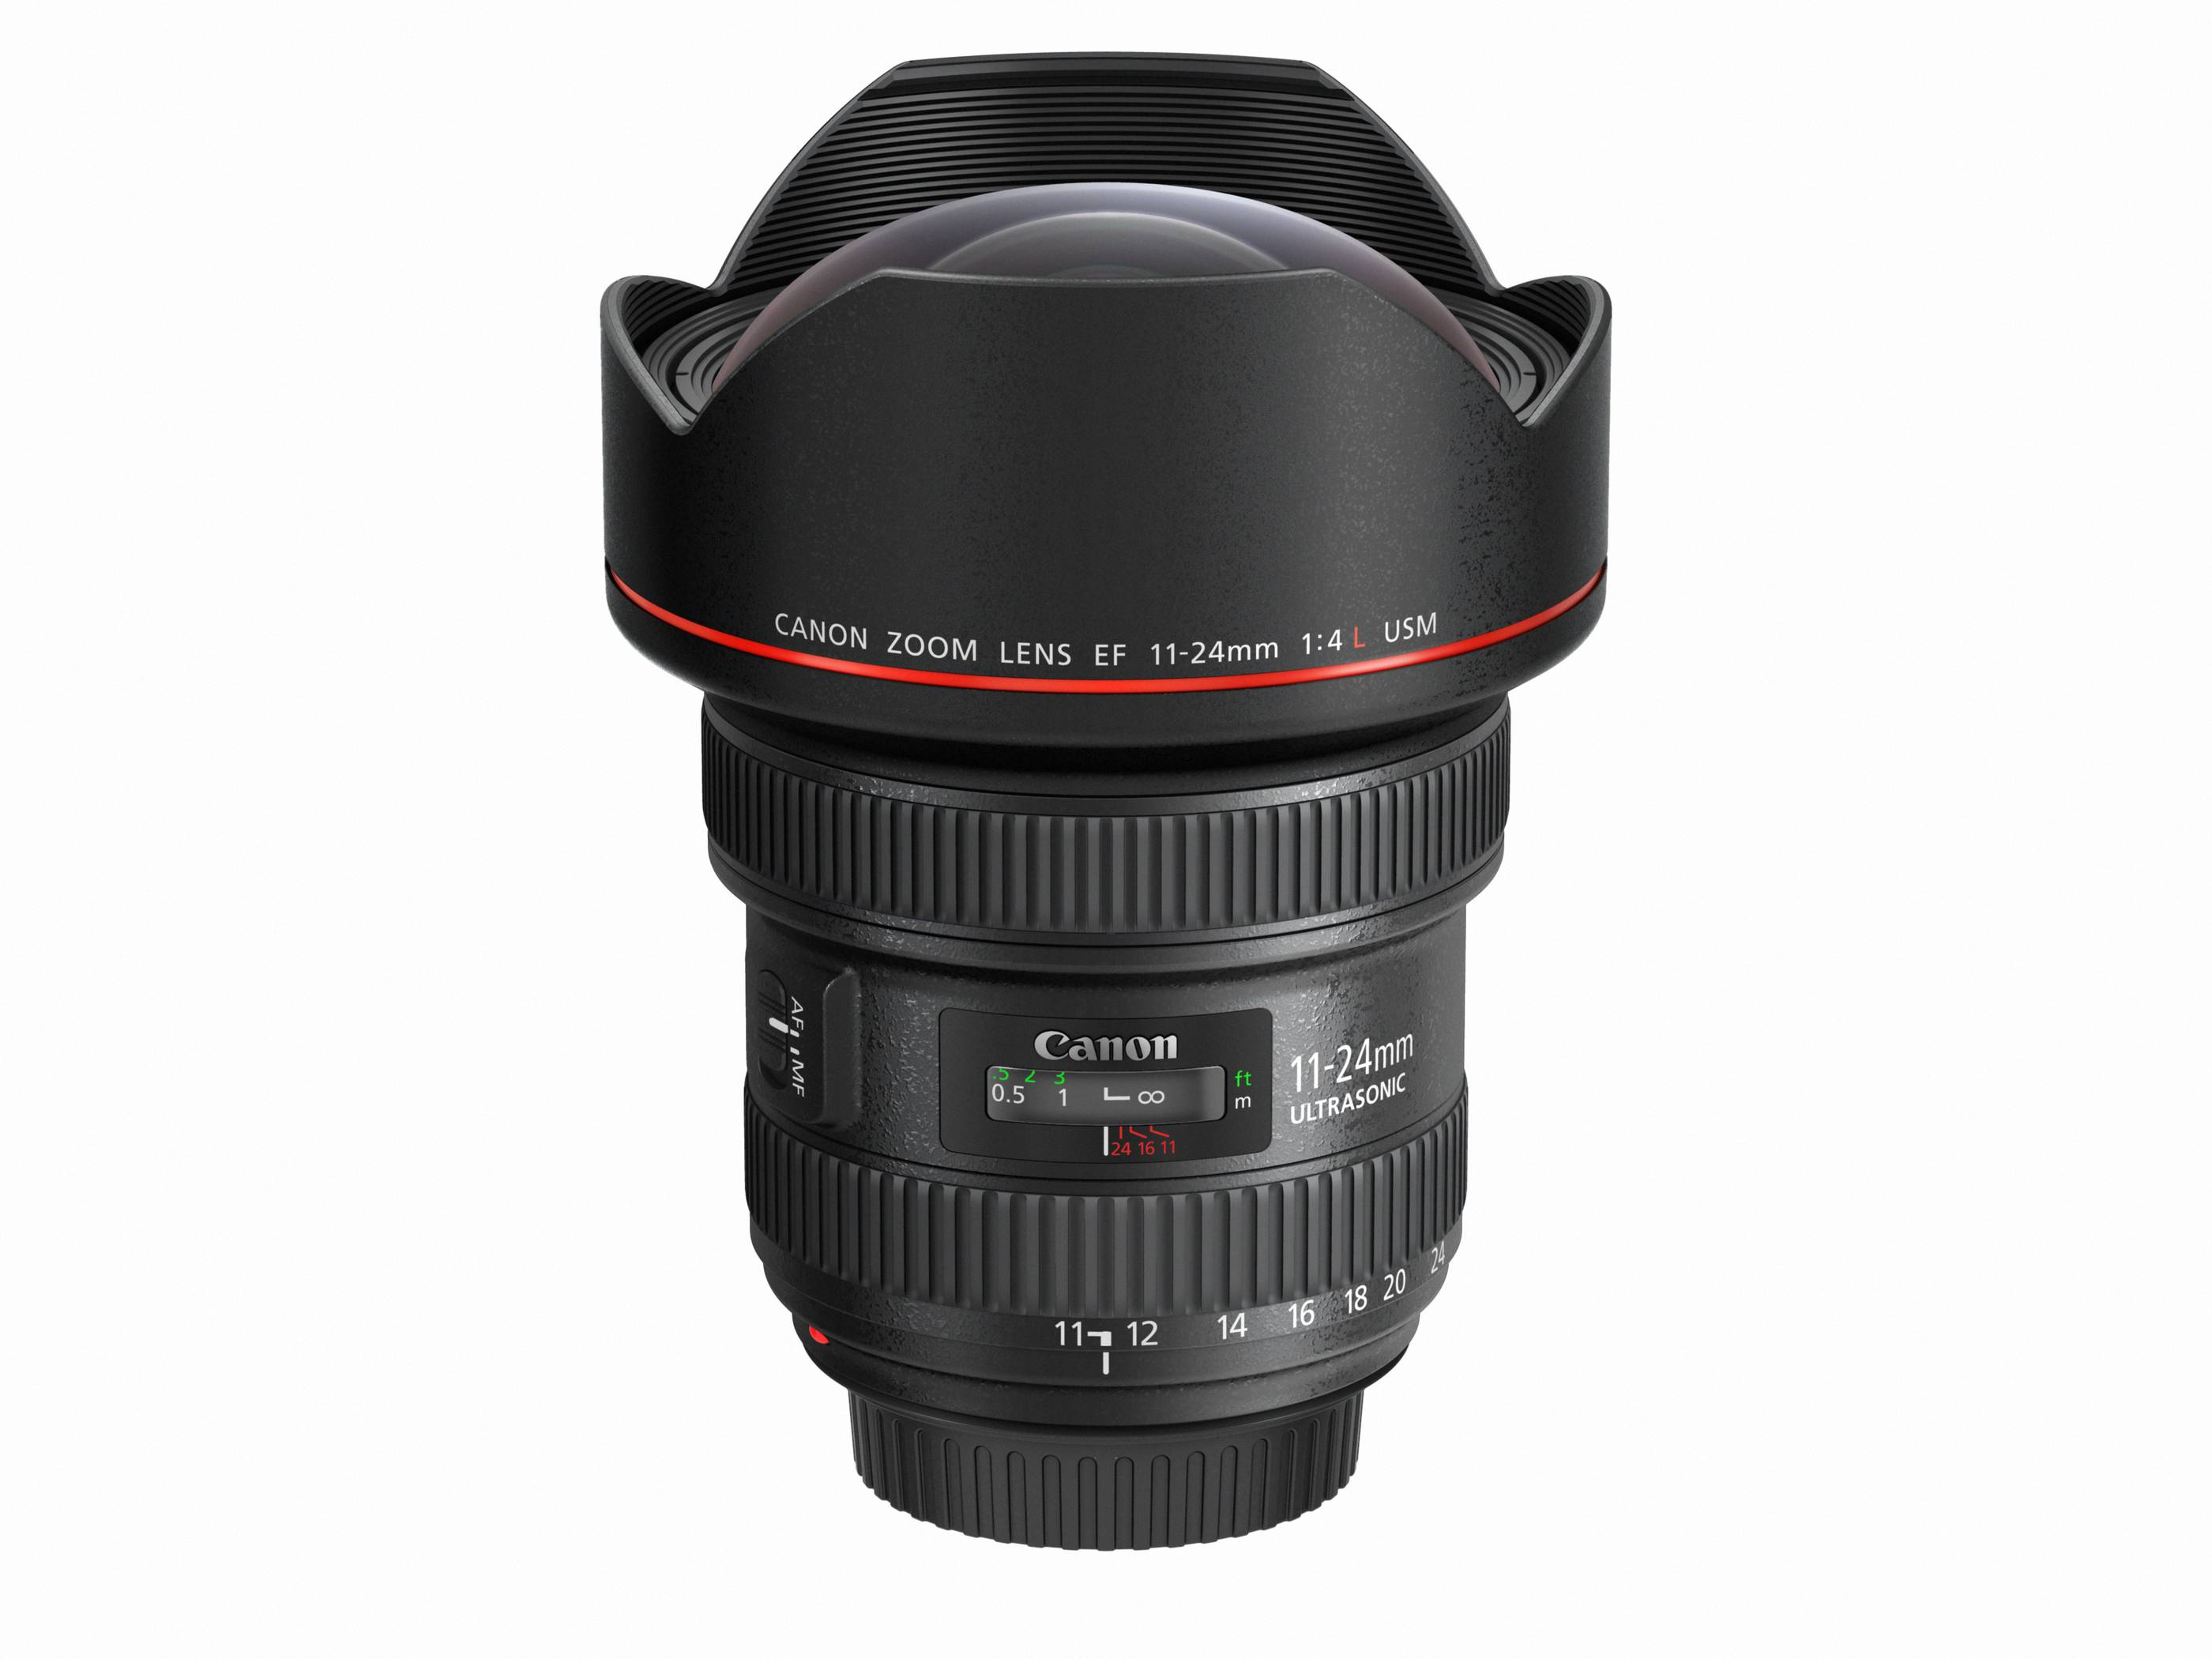 Canon-EF11-24mm-f/4L-USM-Gear-News-Announced-Orms-Photographic-Blog-SouthAfrica